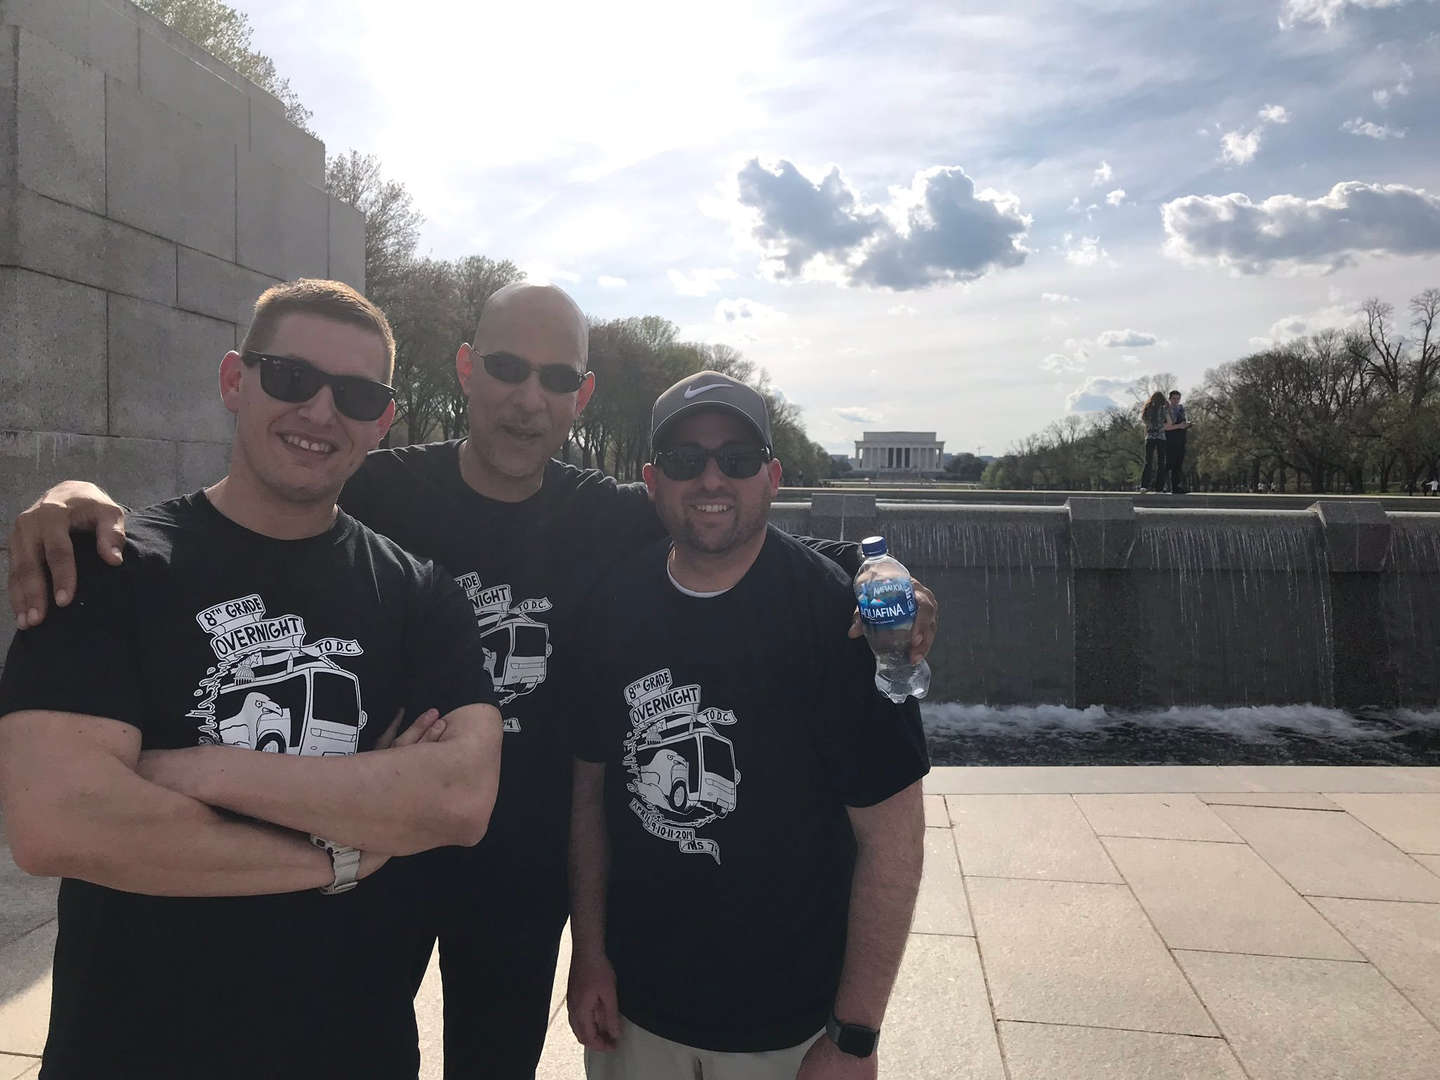 Administrators on the 8th grade trip to Washington DC